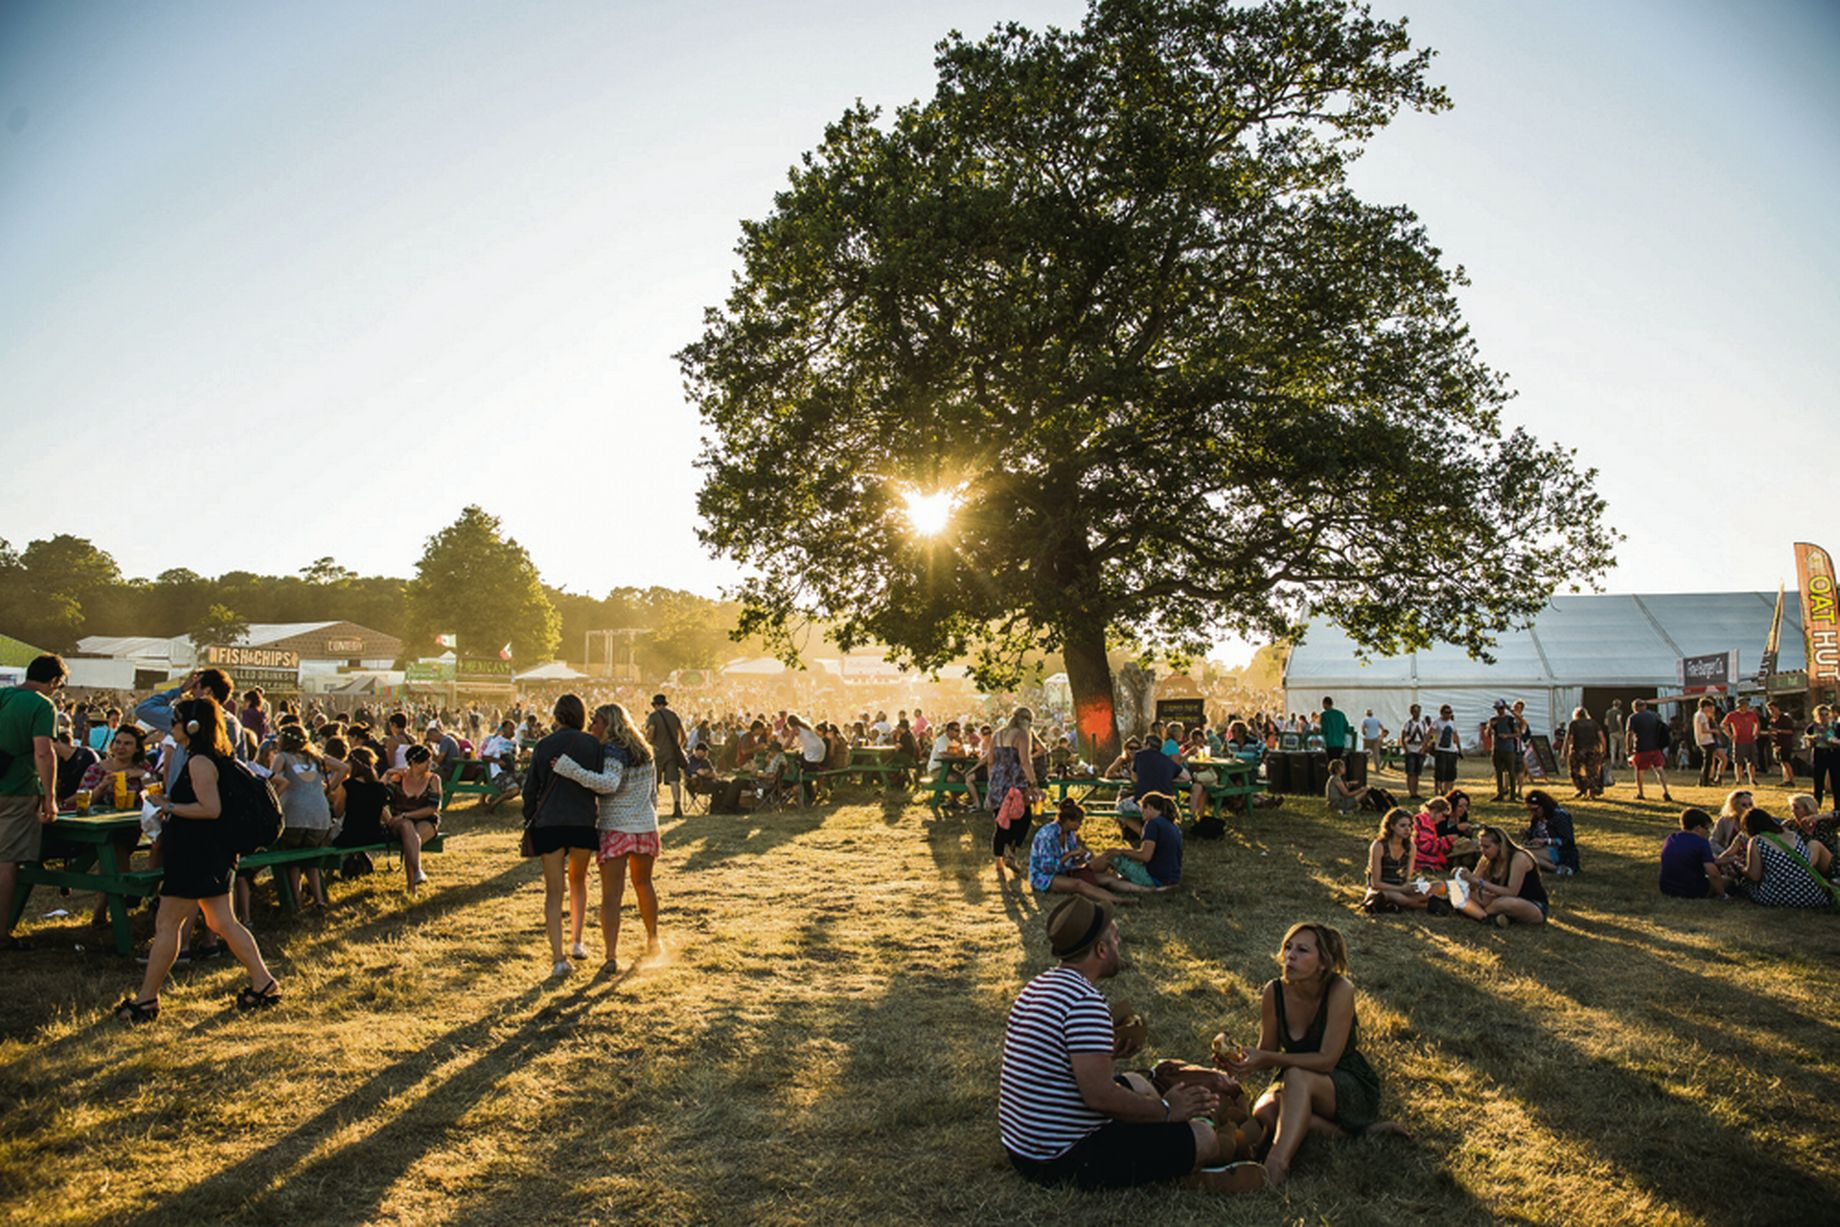 Sustainability at music festivals